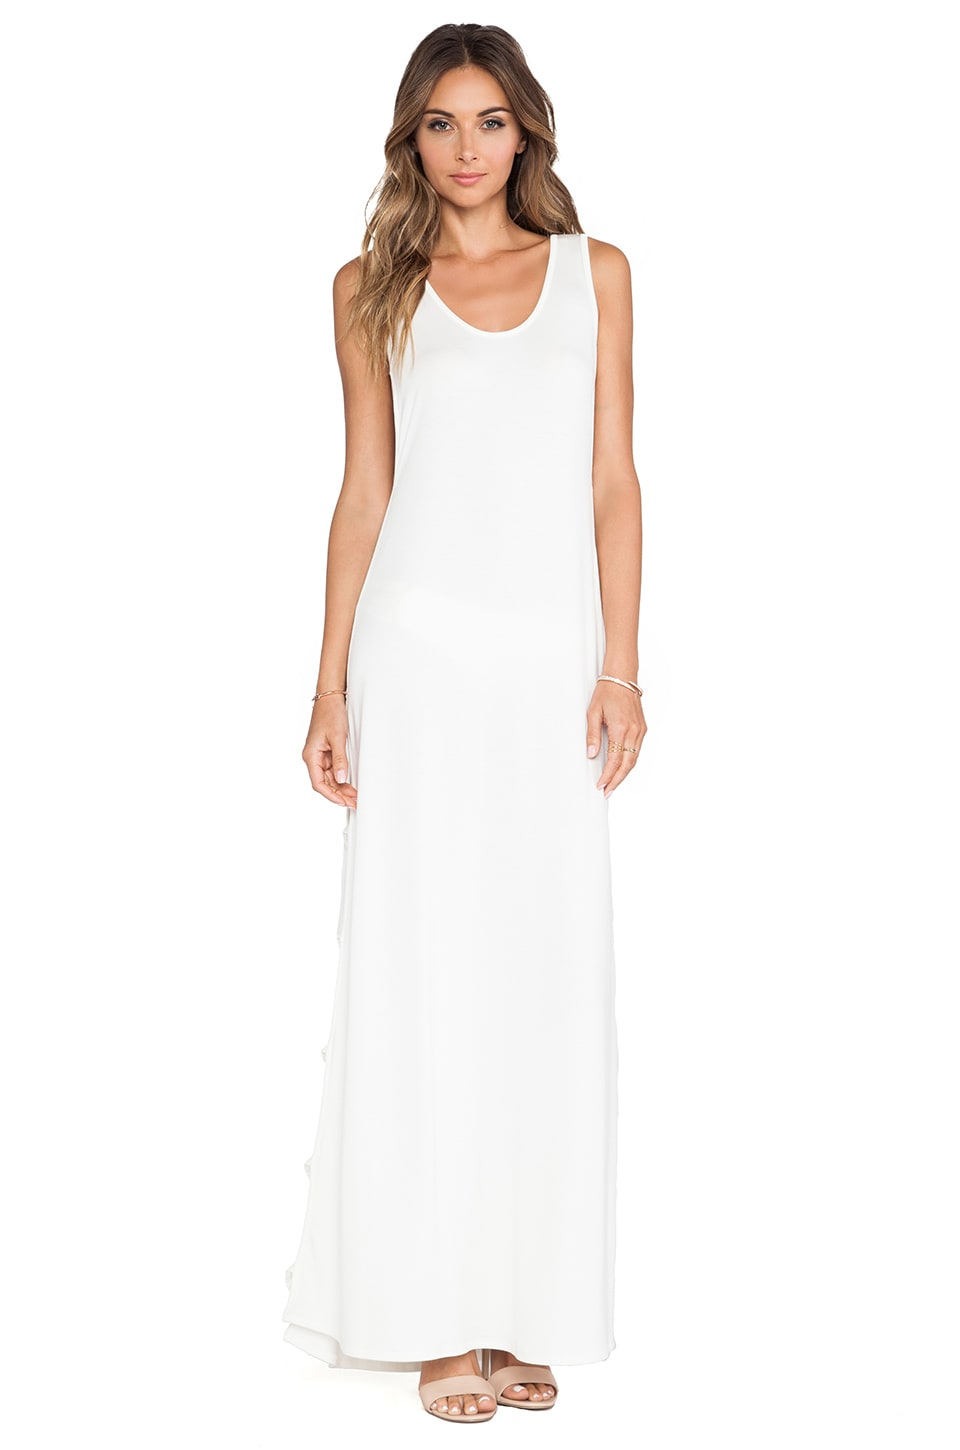 Rachel Pally Elodie Maxi Dress in White